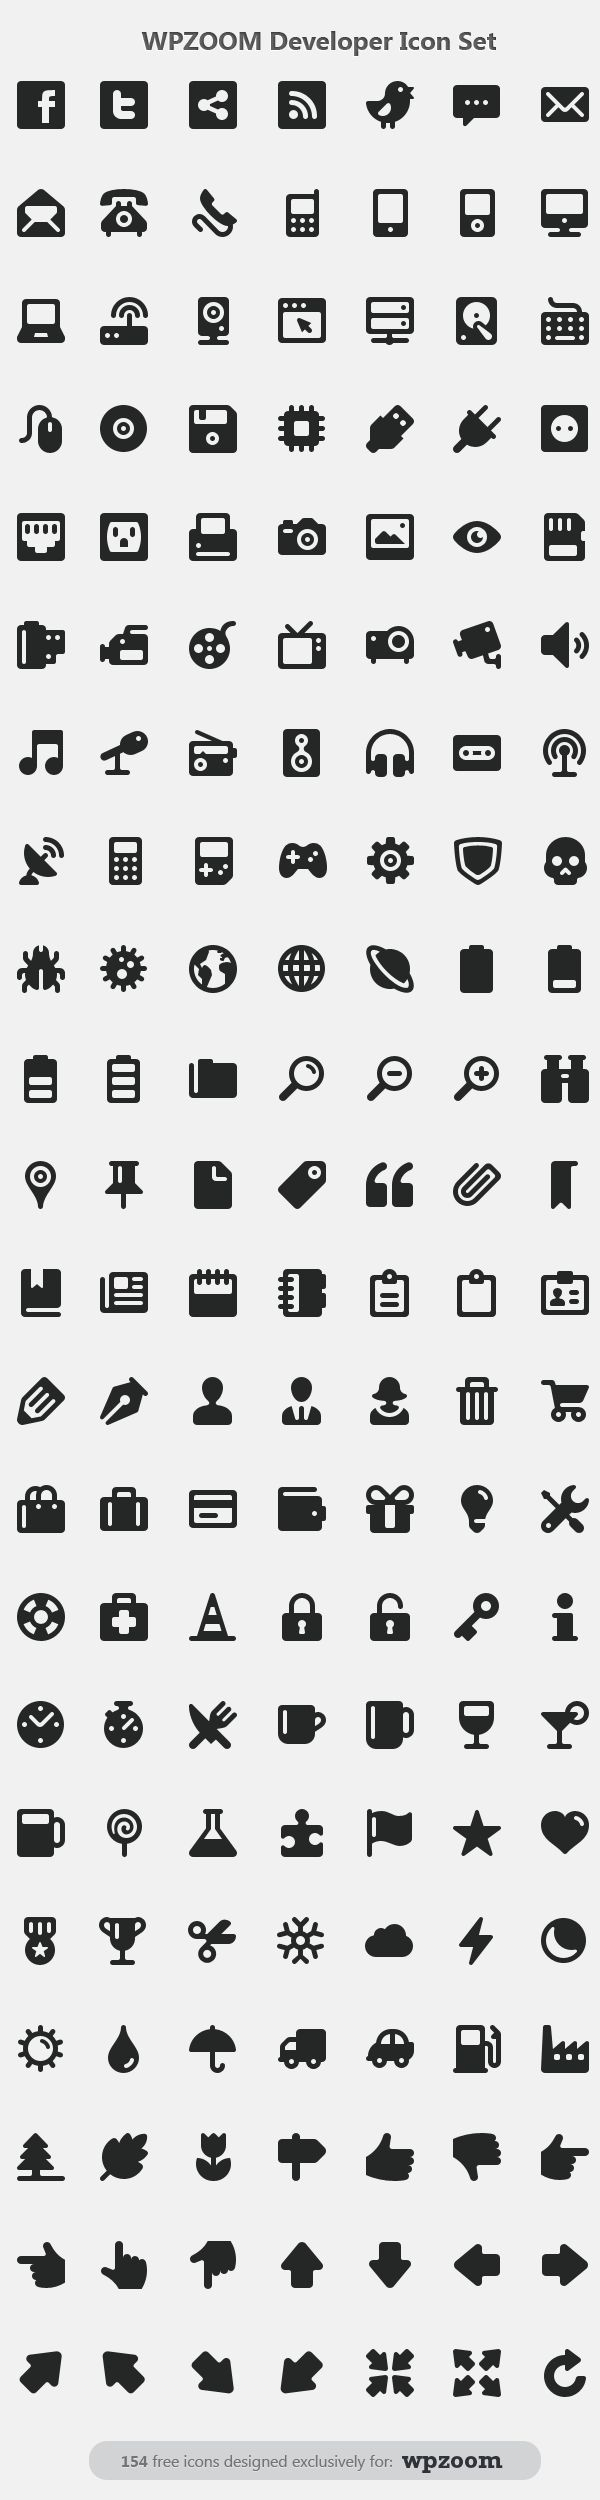 154 free developer icon set in PNG and PSD format